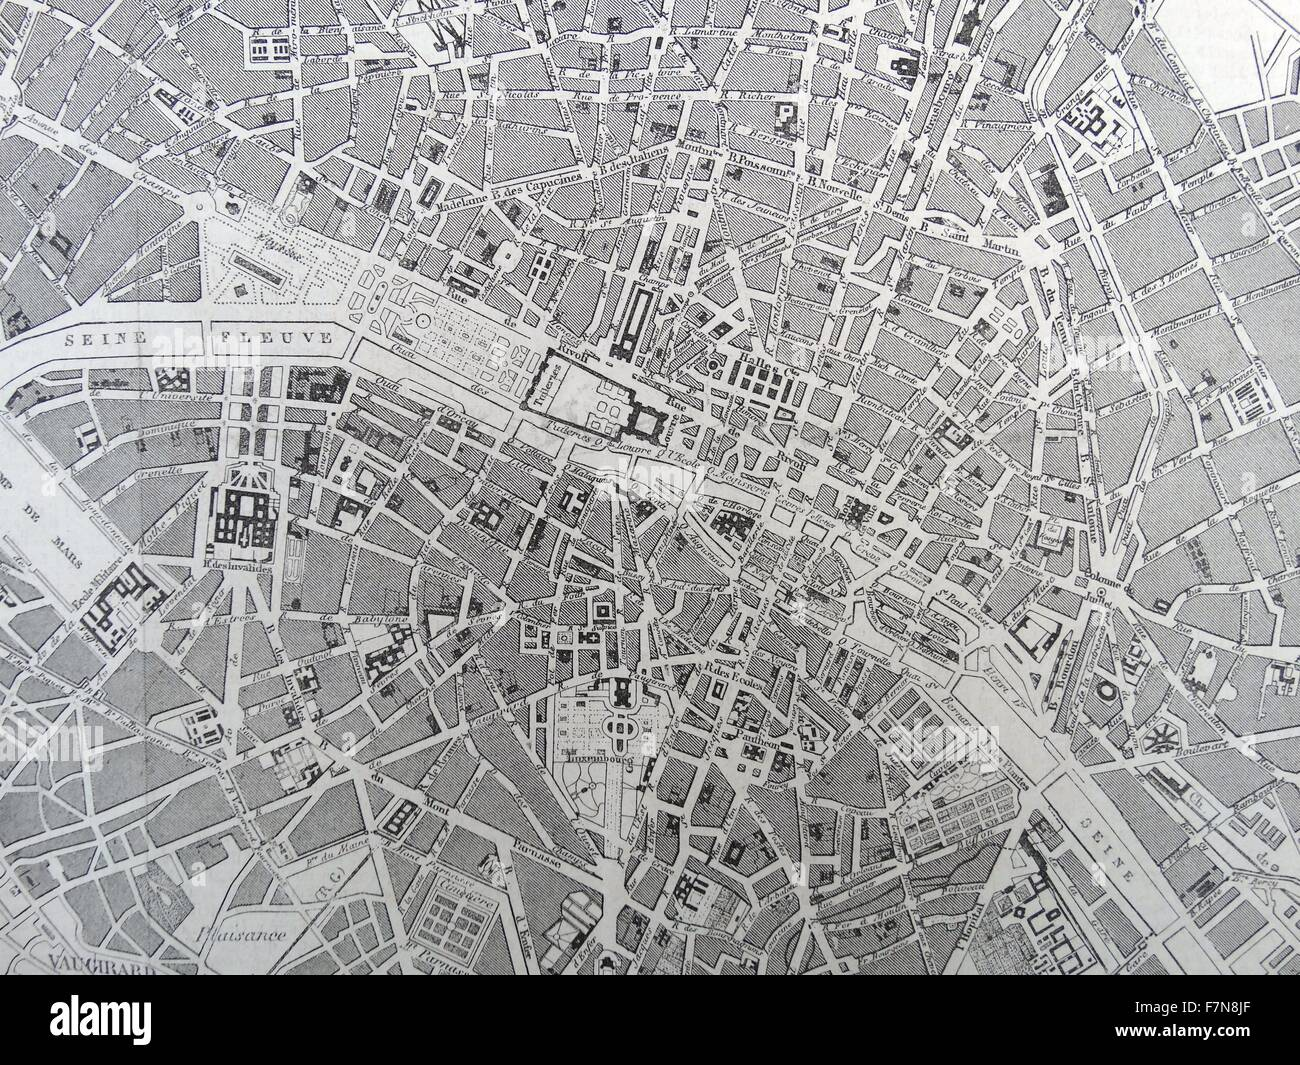 19th Century Map of Paris with the River Seine depicted. Dated 1880 - Stock Image